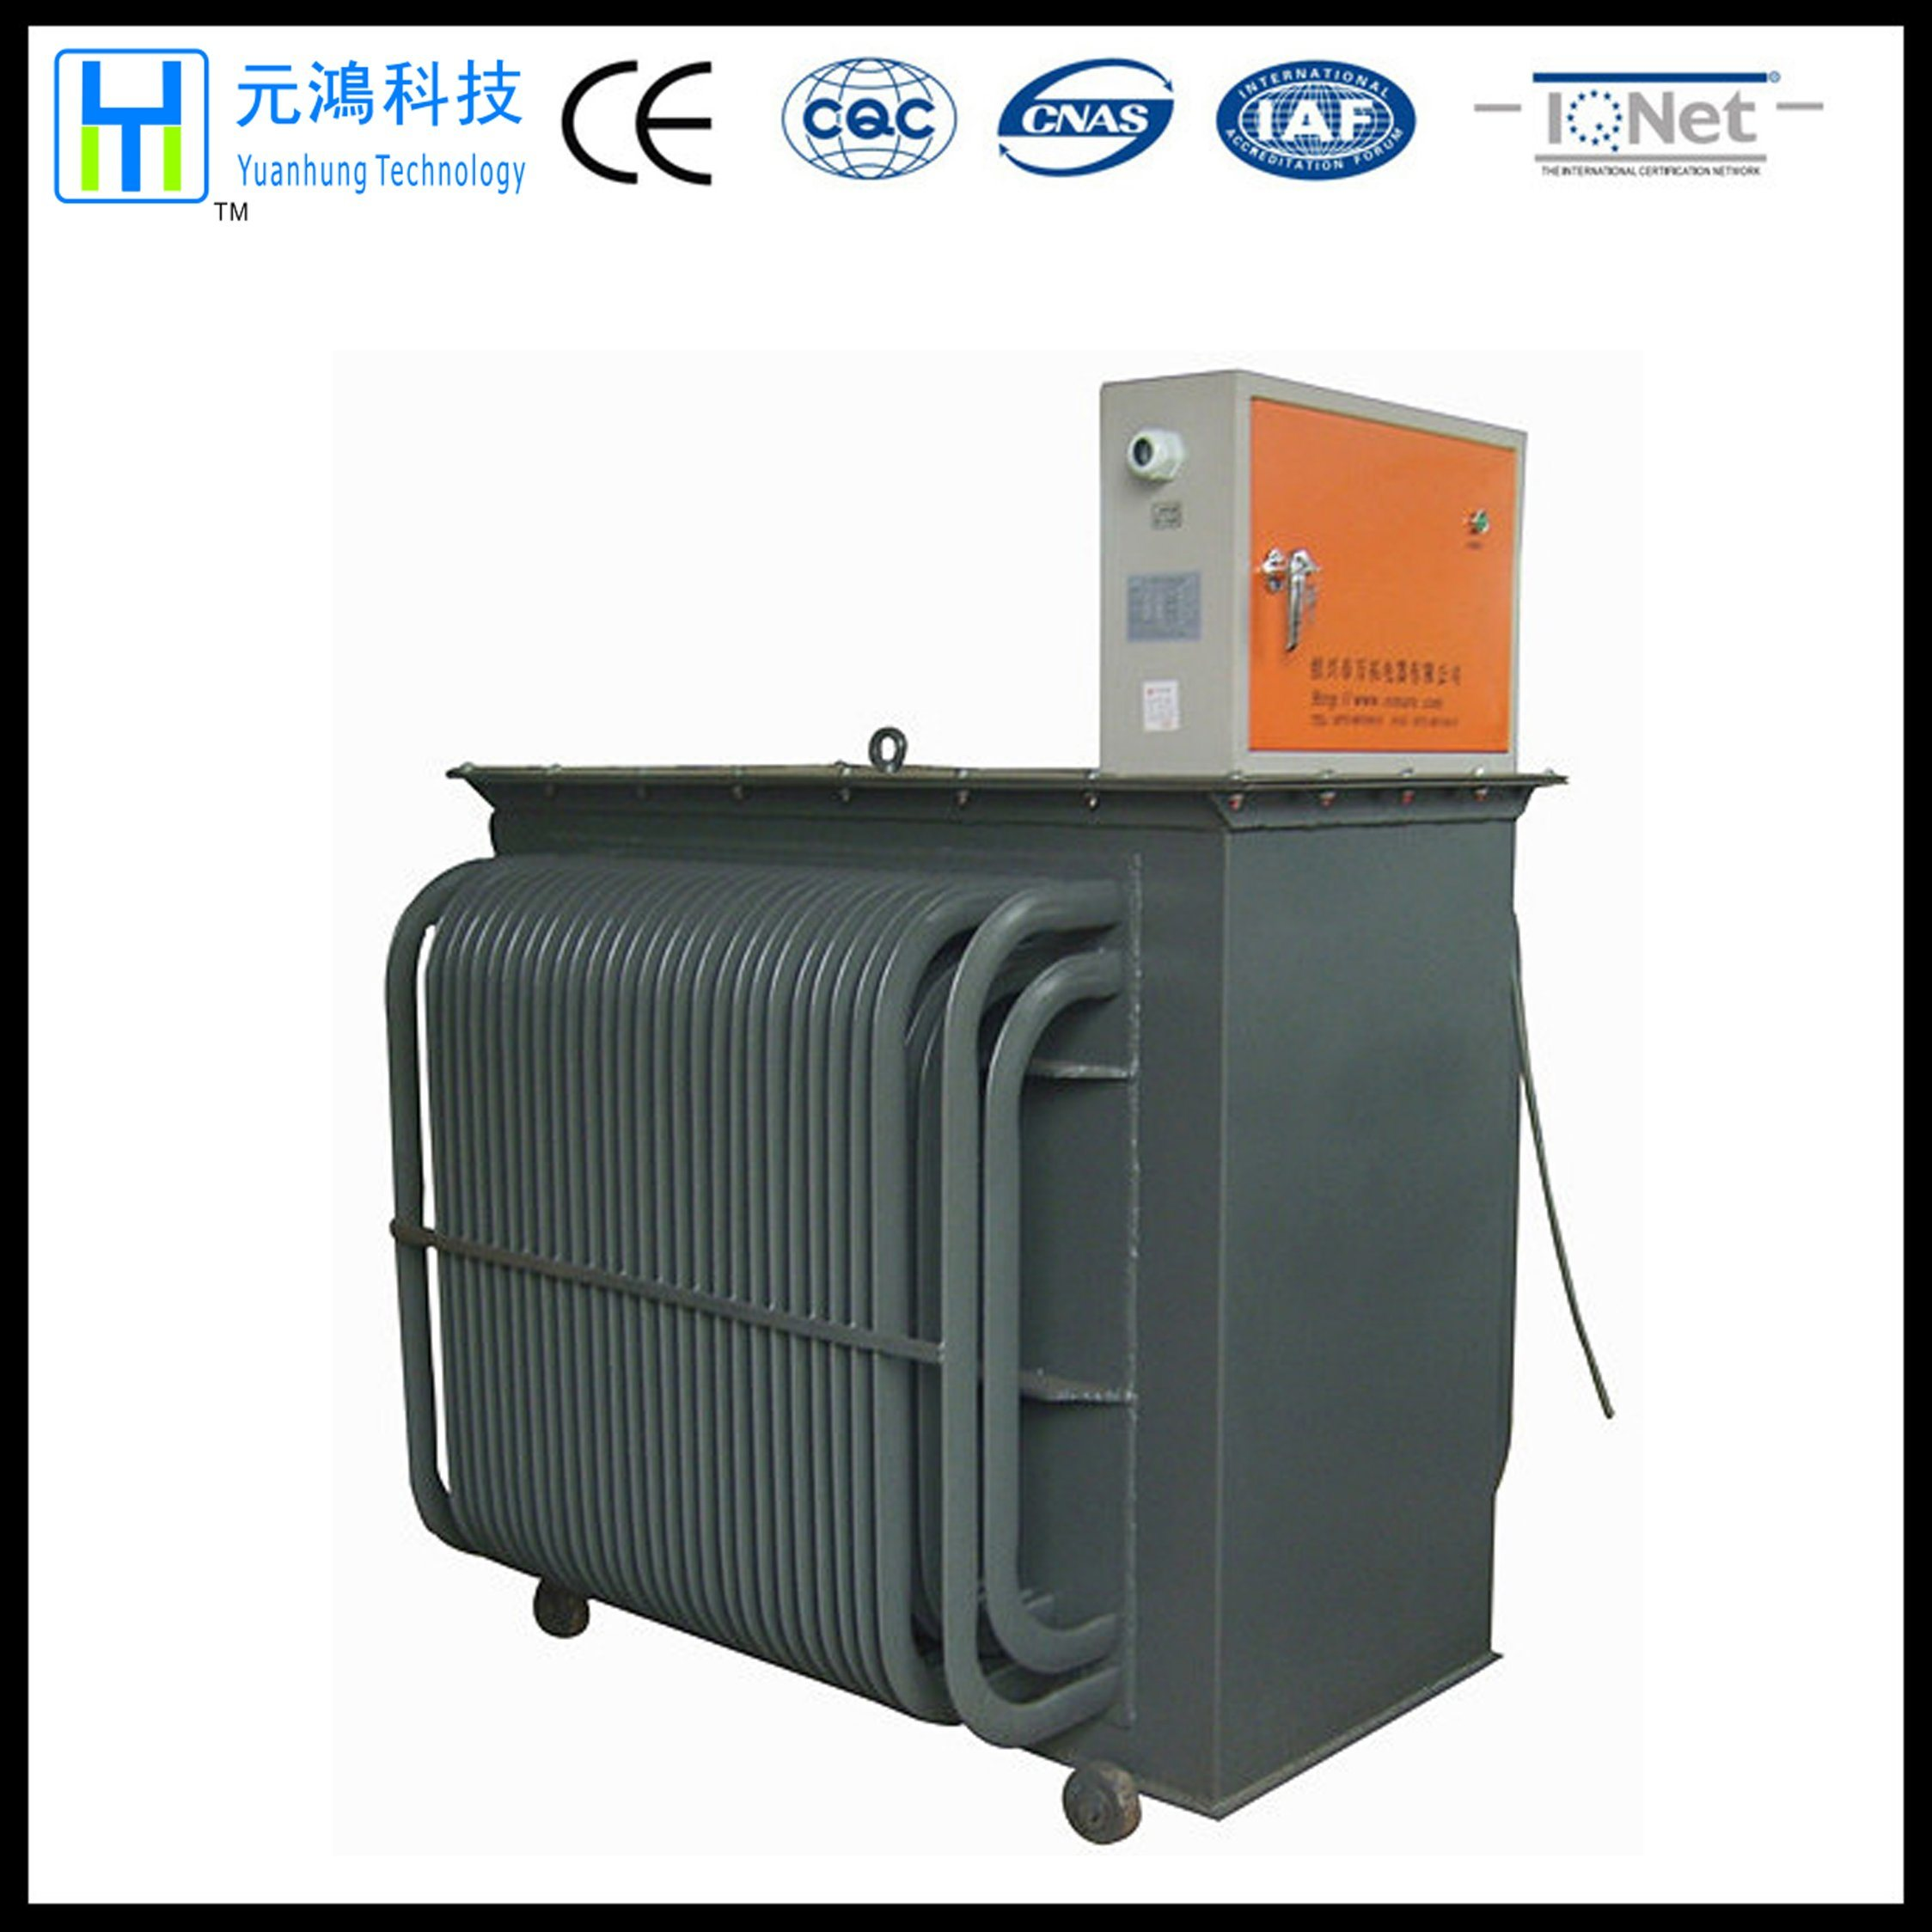 SCR Anodizing Rectifier 6000 AMP 20V with Oil-Immersed